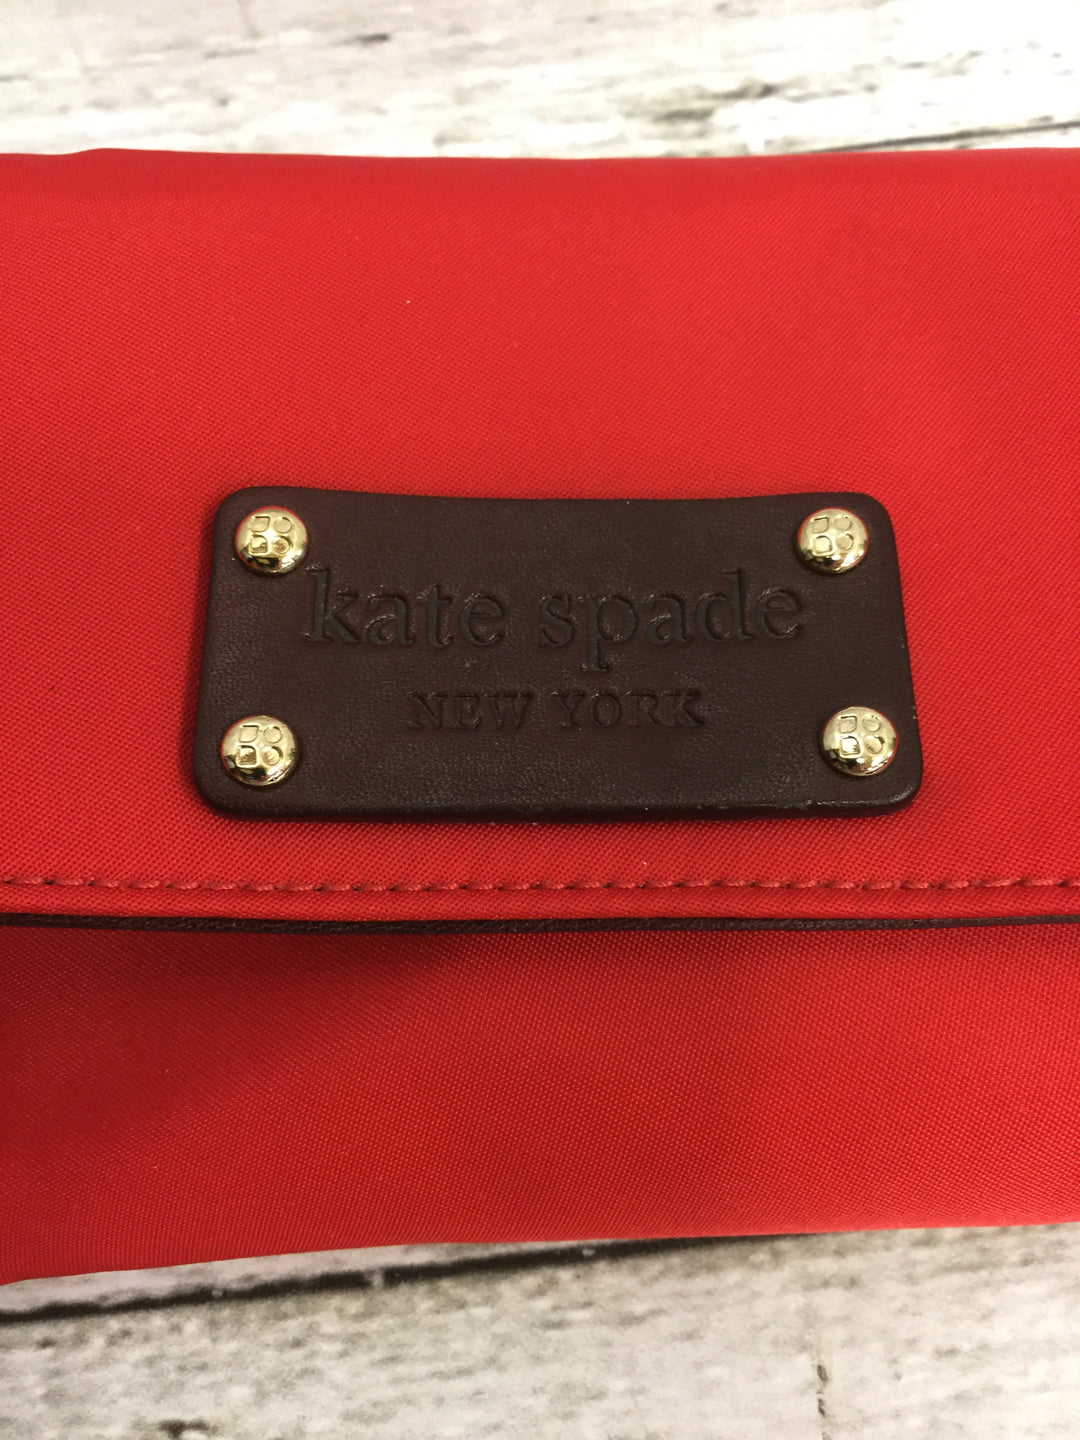 Photo #1 - BRAND: KATE SPADE , STYLE: WALLET , COLOR: RED , SIZE: SMALL , SKU: 127-3371-48386, , IN GREAT CONDITION. MINOR WEAR ON THE INSIDE LEATHER (AS PICTURED).